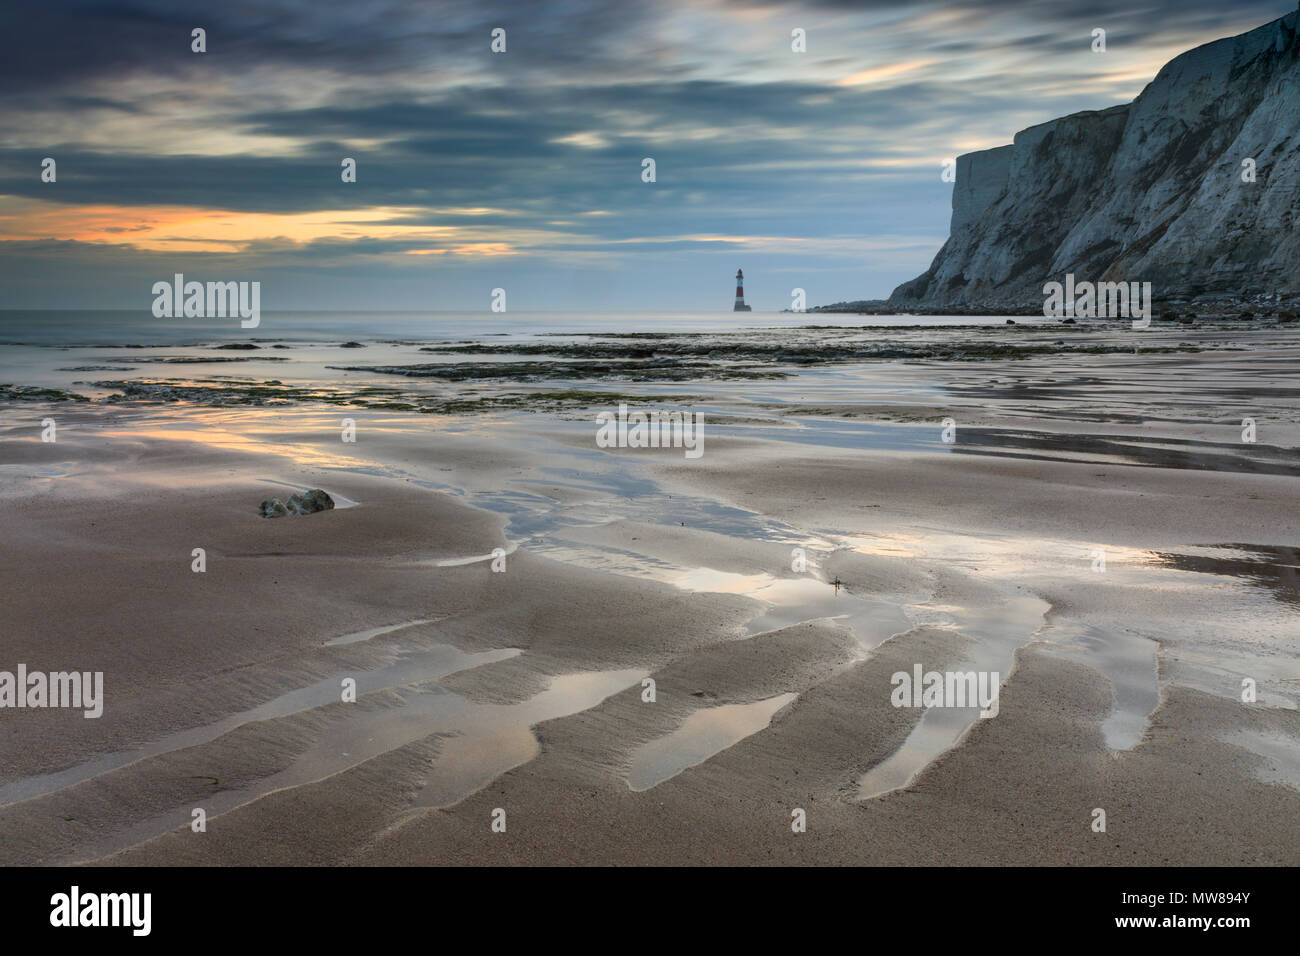 Falling Sands Beach with Beachy Head in the distance. - Stock Image